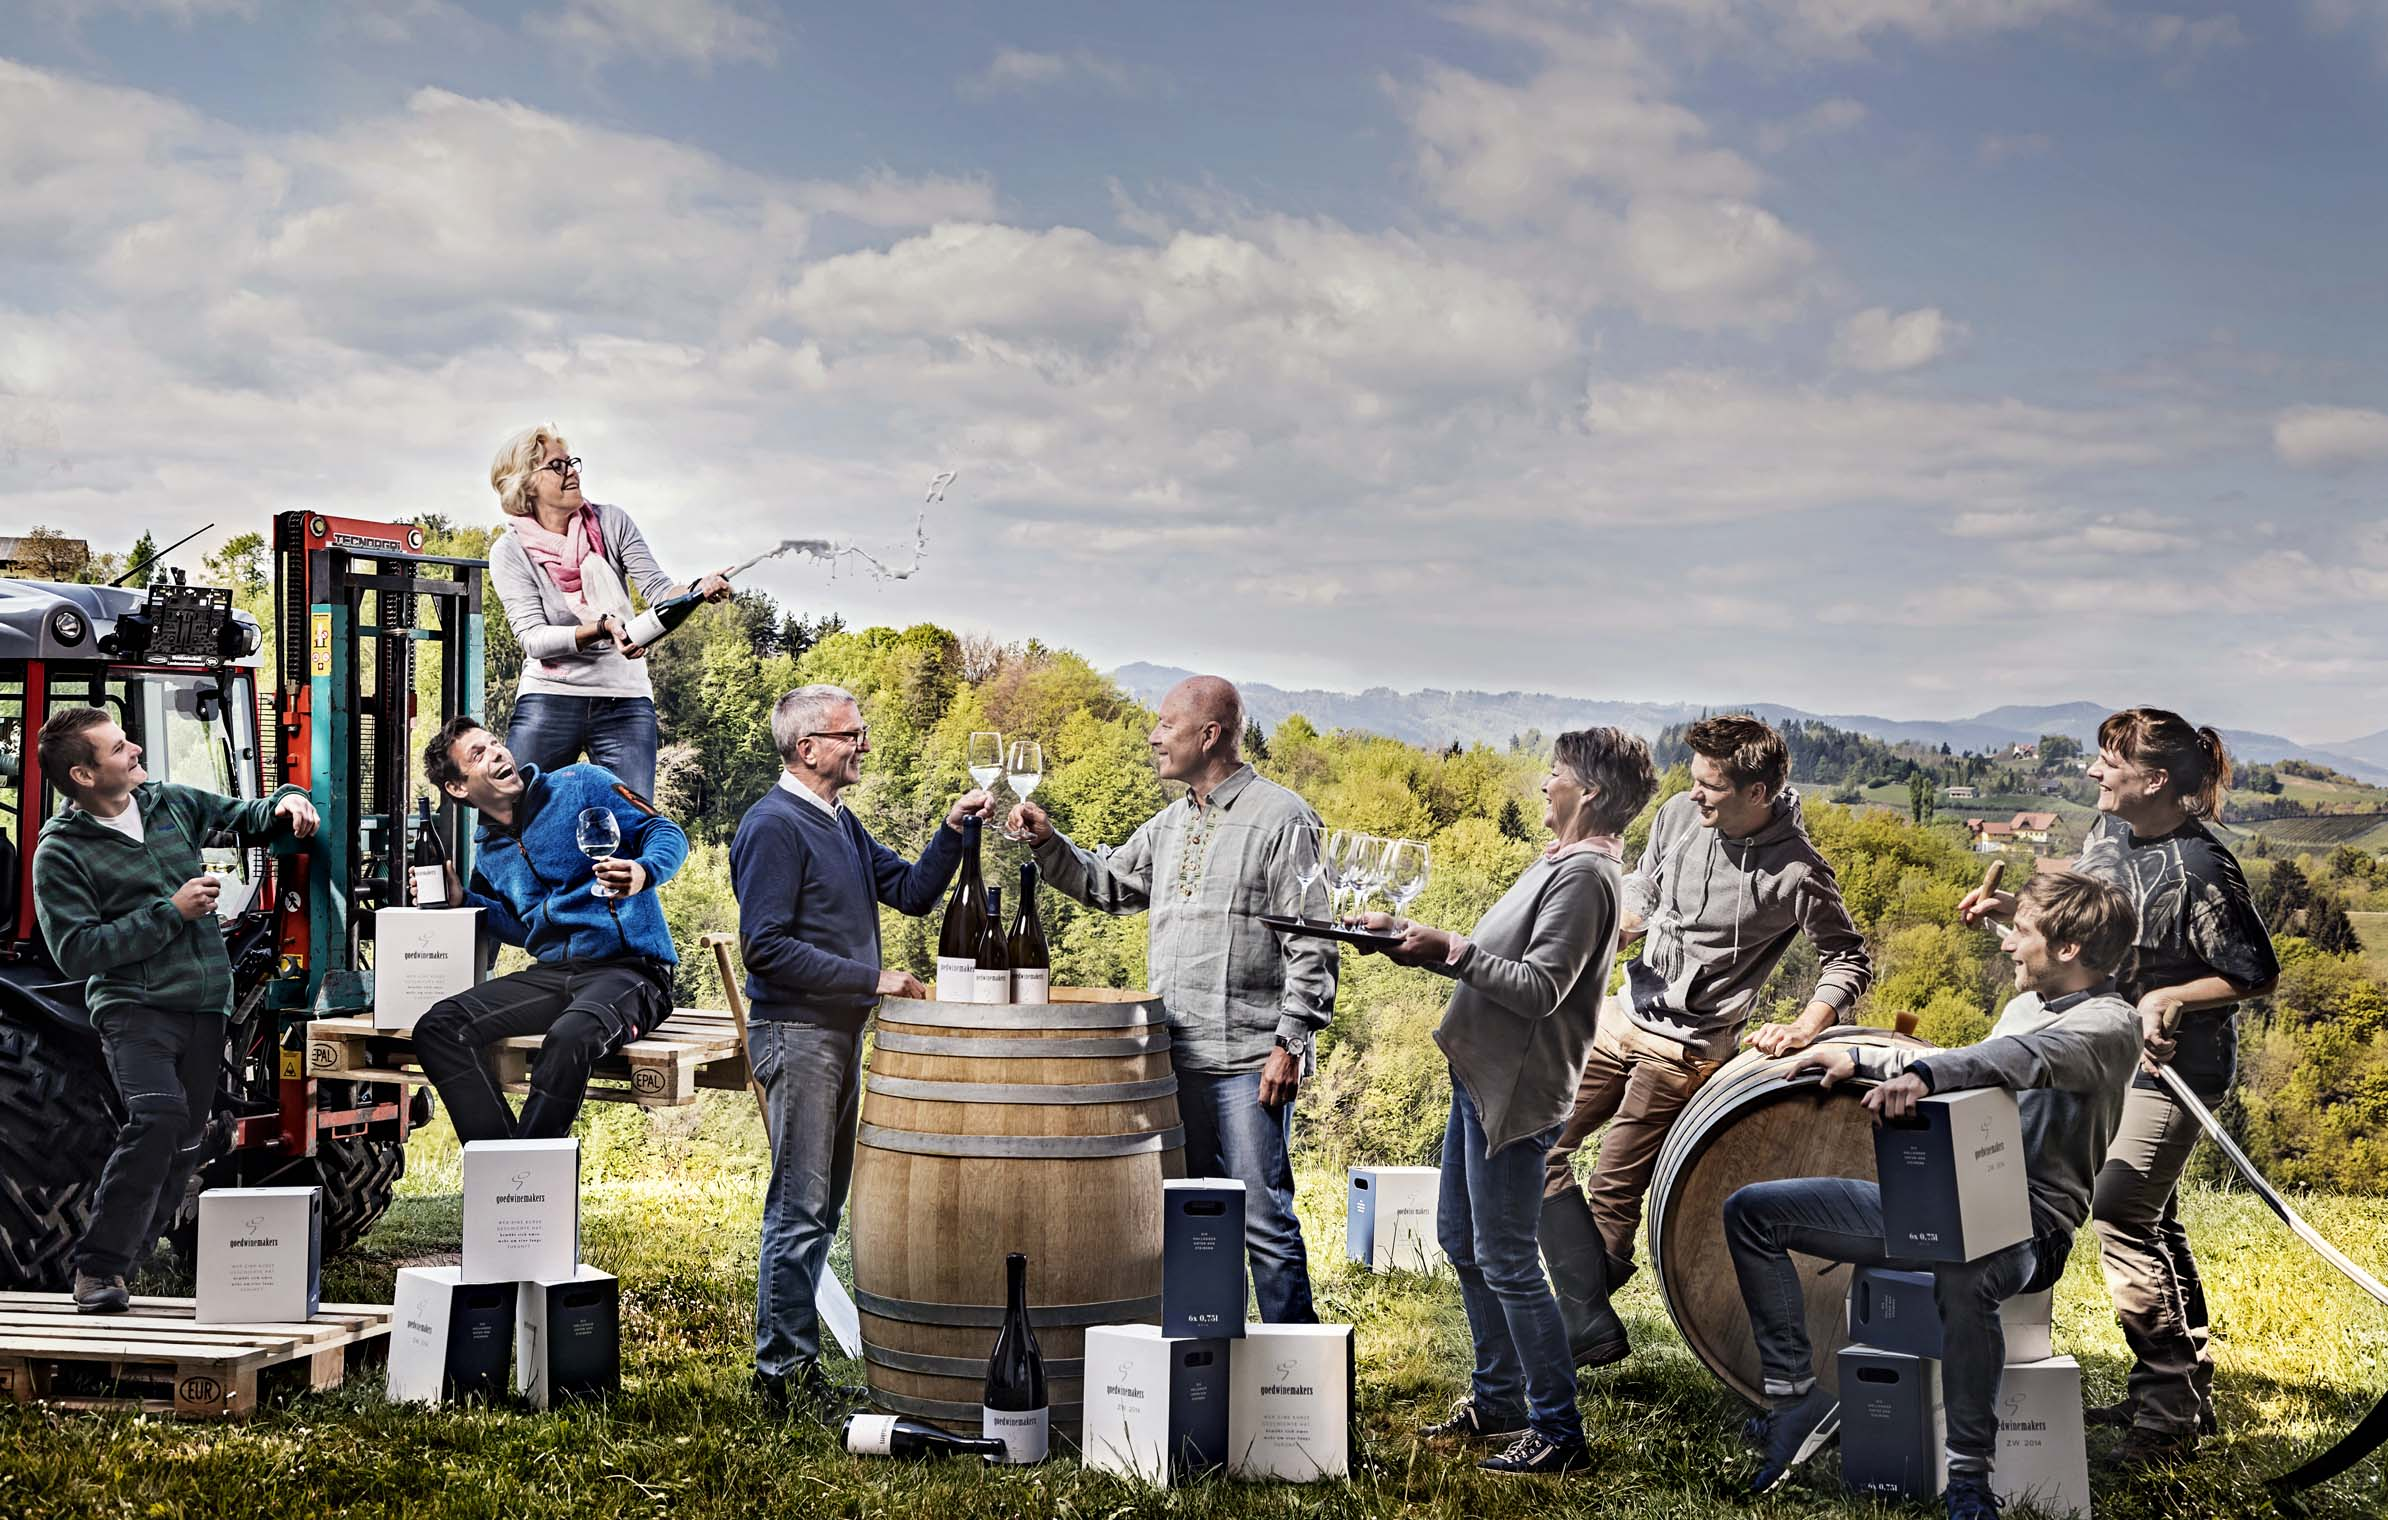 goedwinemakers_header_quality_groupshot_wine_wineyard_styria_austria Kopie